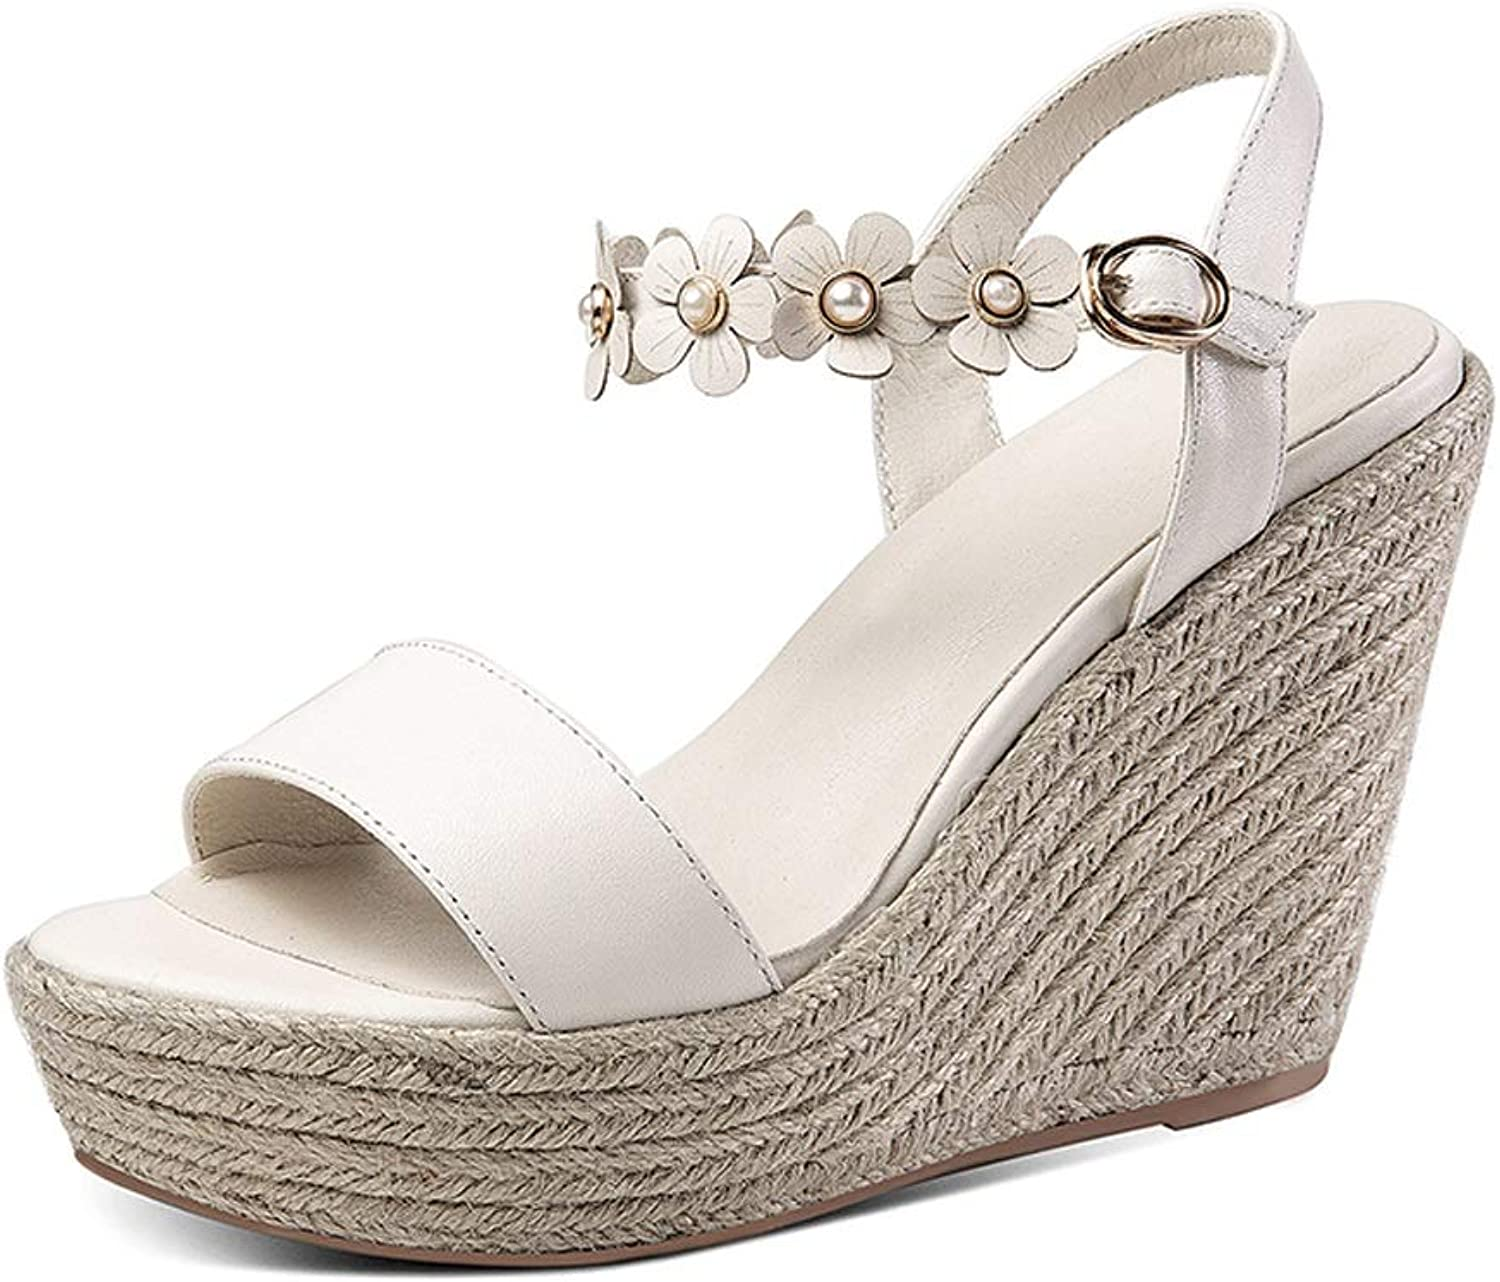 Wedge Sandals Summer Leather High Heels Comfortable Platform Sandals Fashion Women's shoes Open Toe High Heels High 11cm (color   White, Size   39 US7.5)